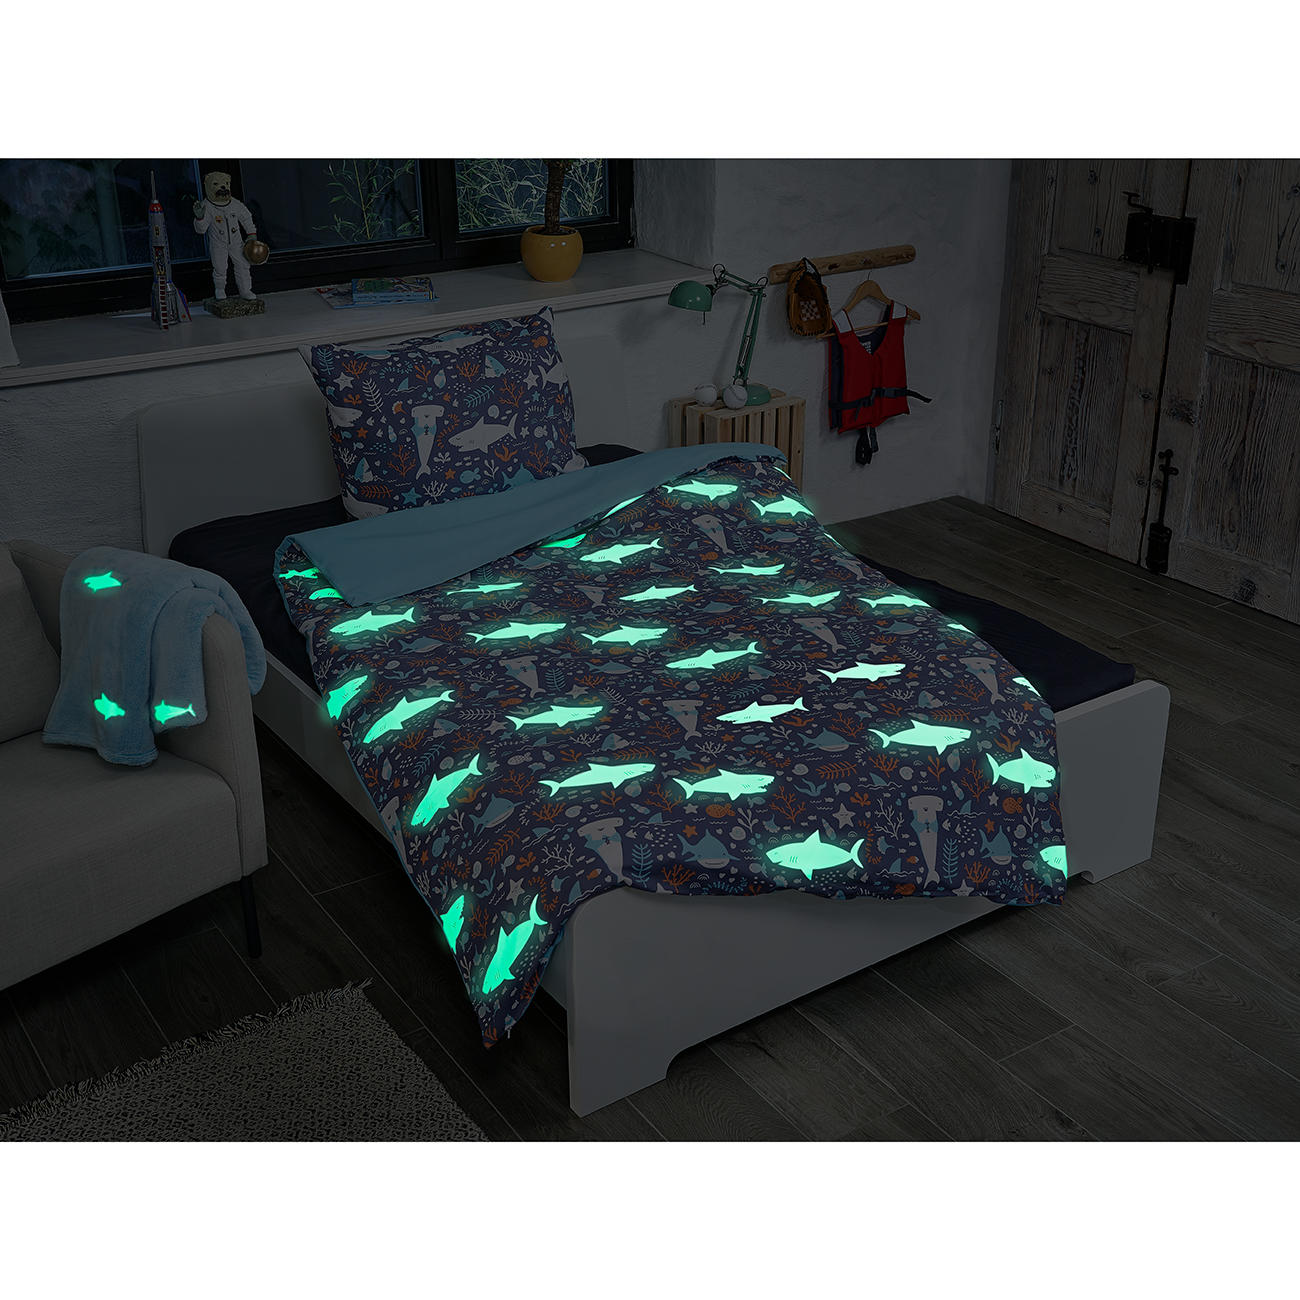 Mistral Home Glow In The Dark Bettwäsche Mit Leuchteffekt Hai Motiv 135 X 200 Cm